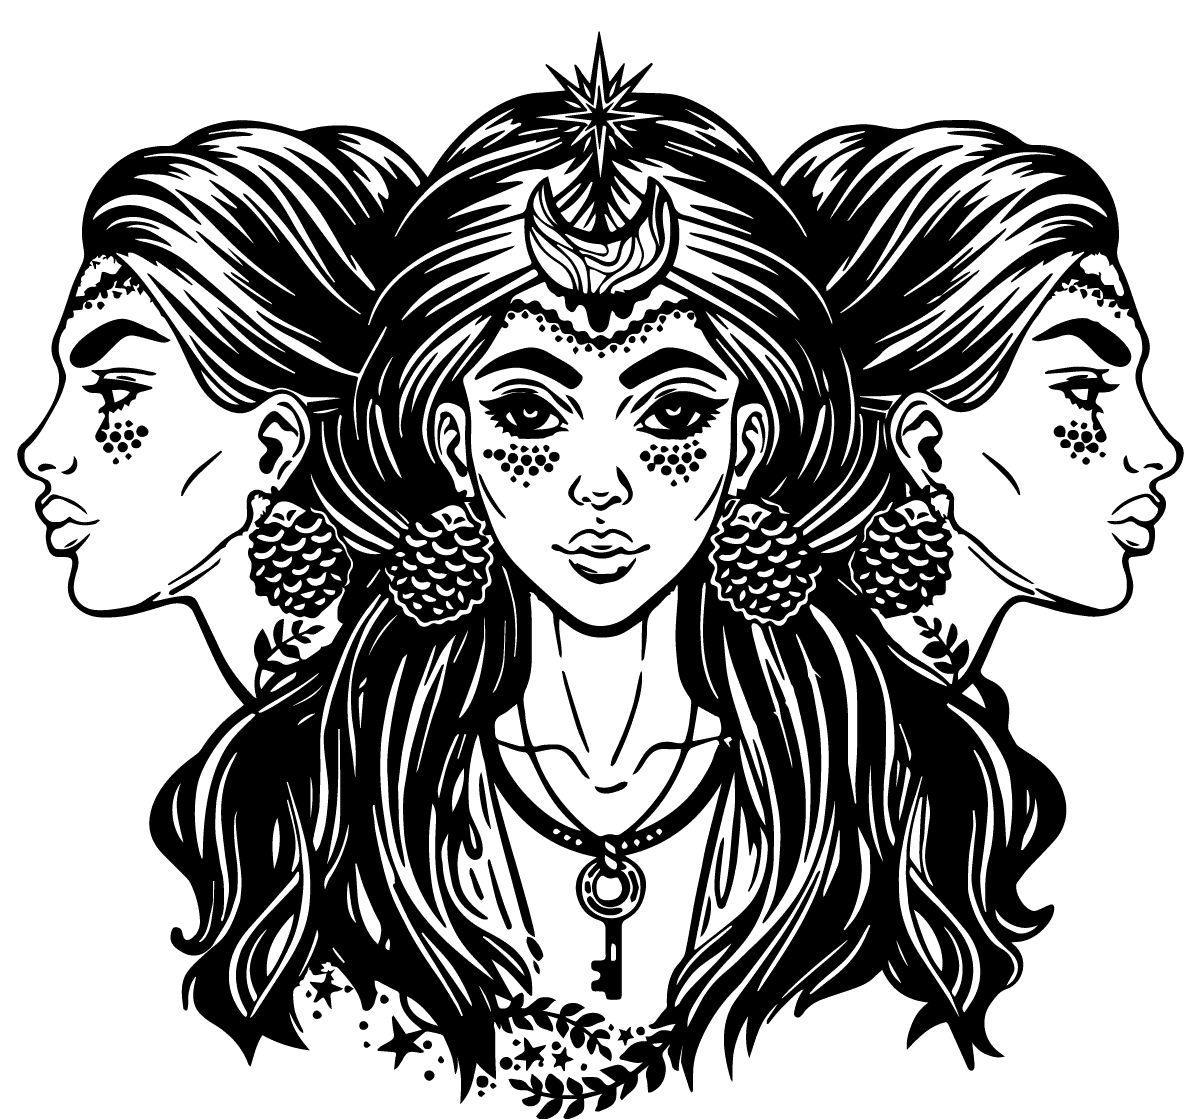 Hecate Greek Goddess Of Magic And Witchcraft Hecate Myths And Facts